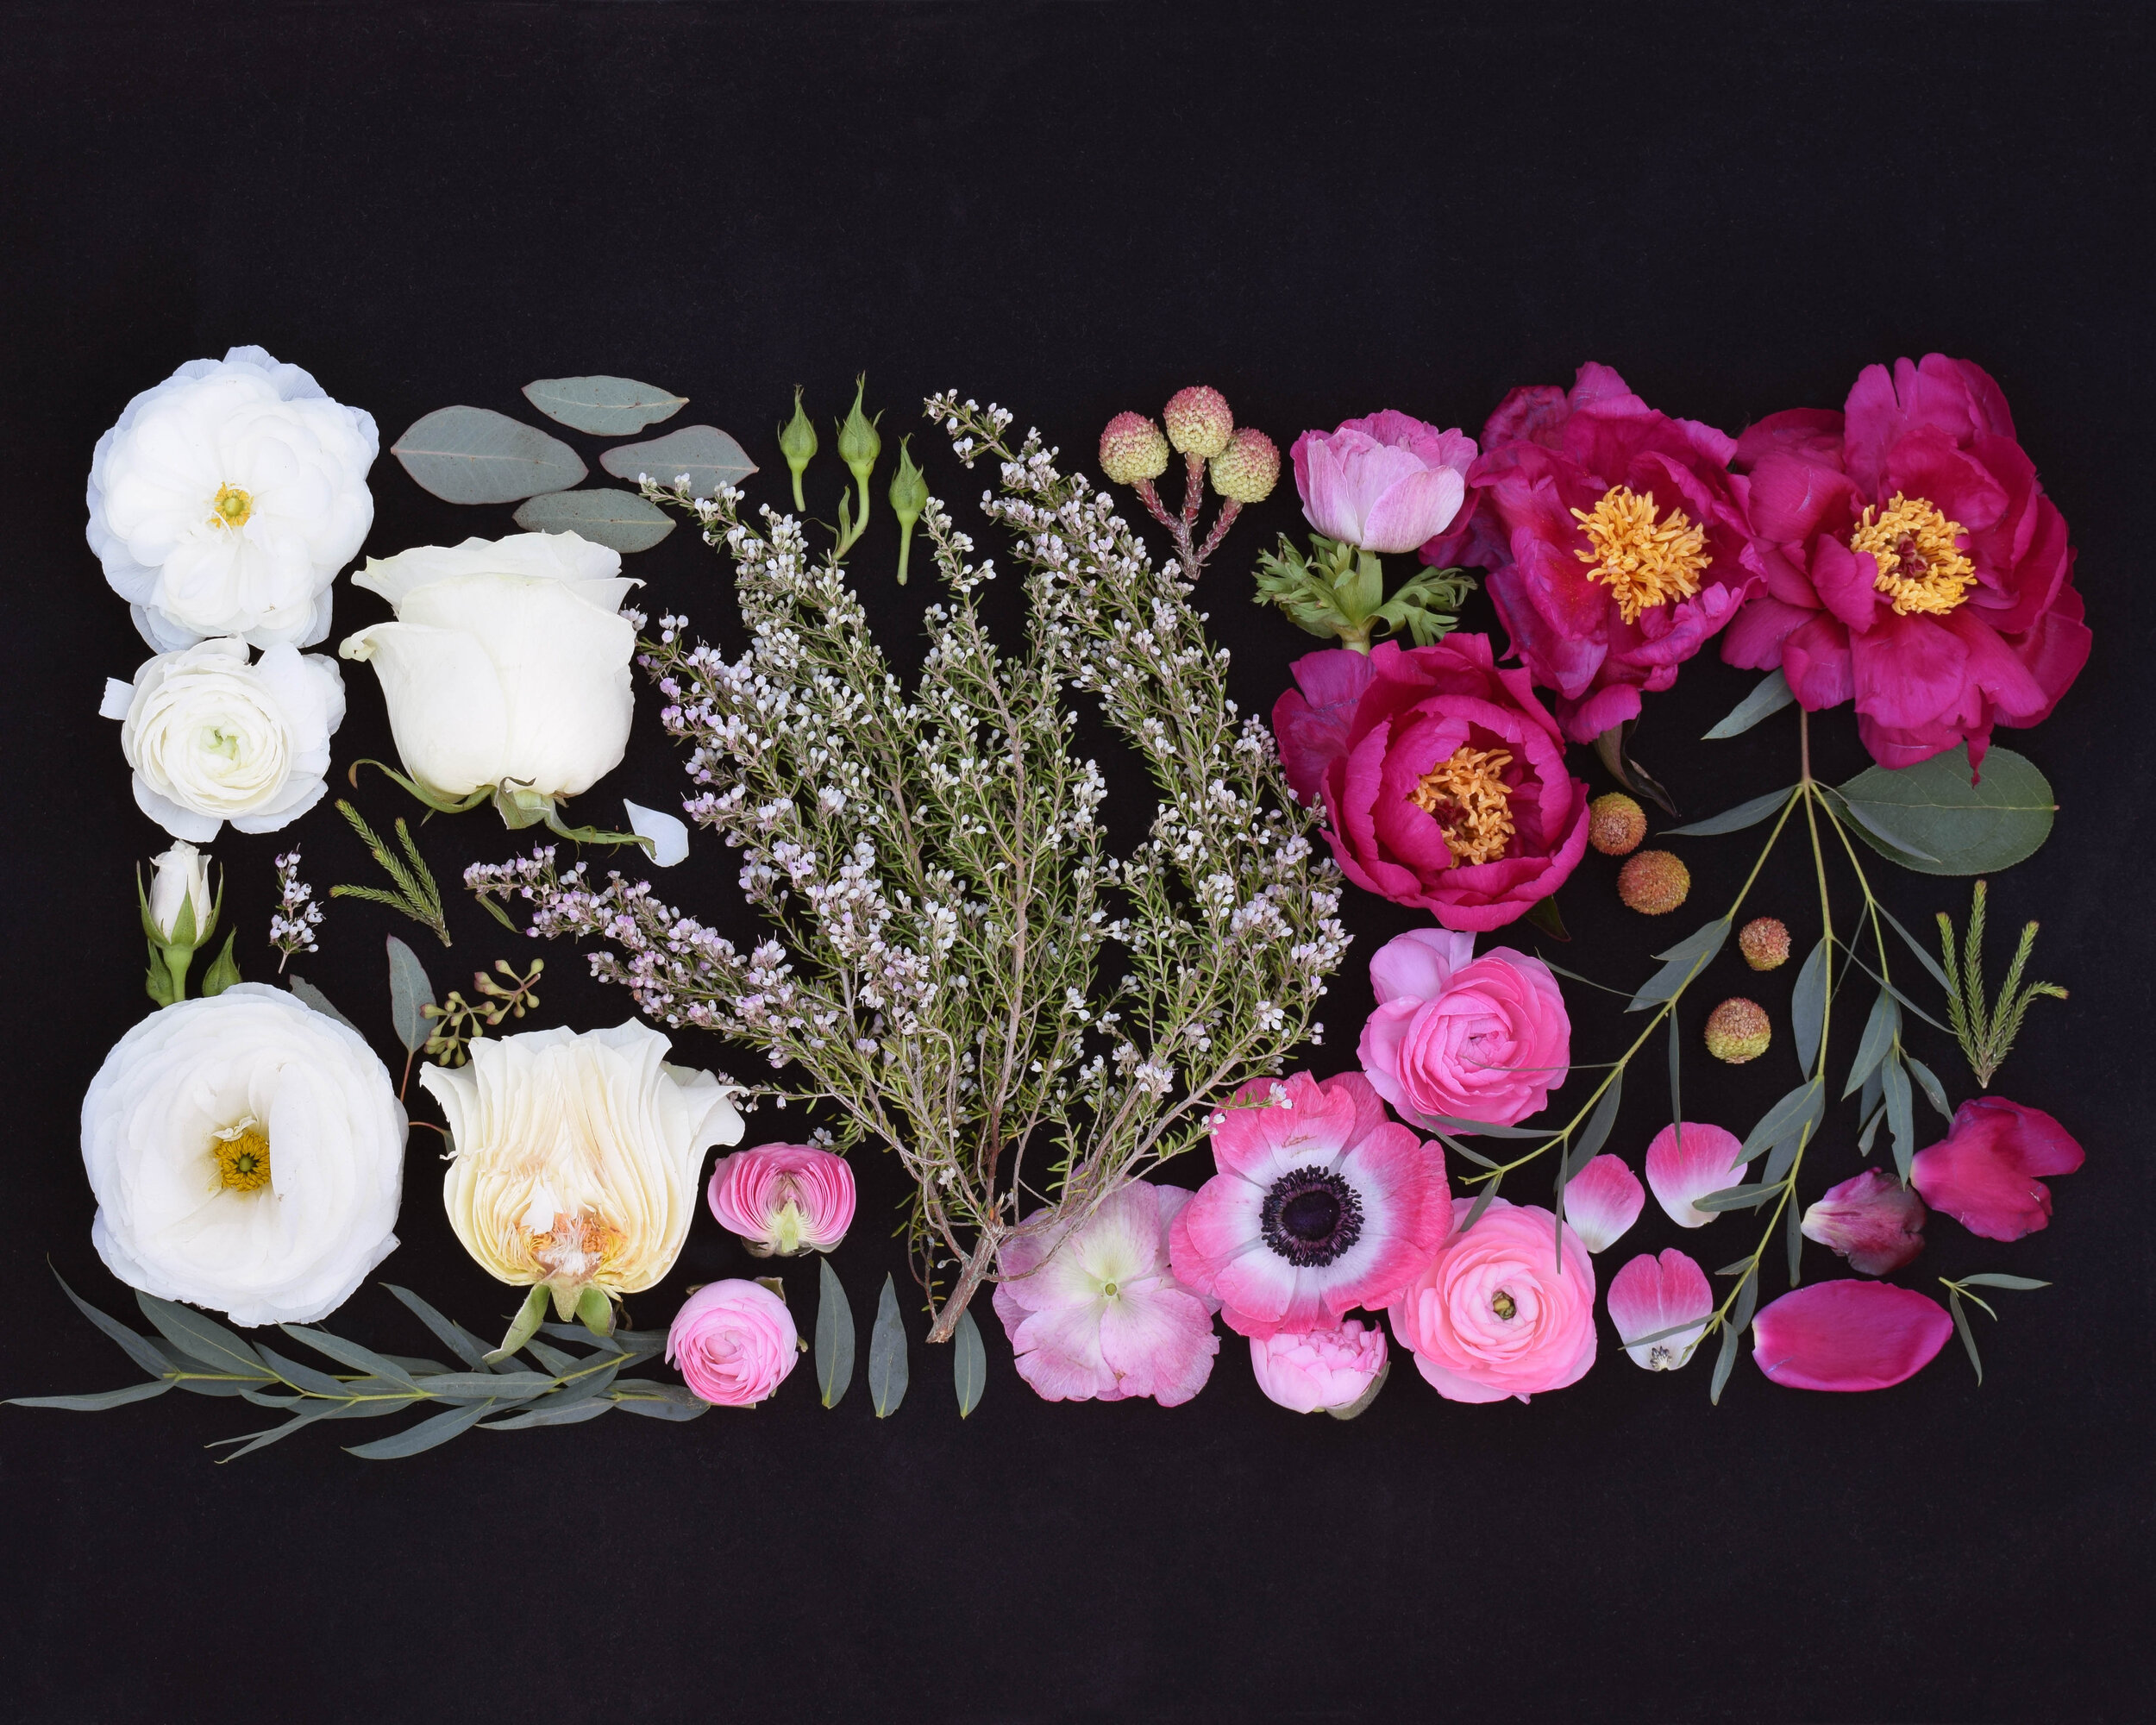 Amy Lynne Originals Bouquet - Beautifully photographed still-life collage of deconstructed wedding bouquet.